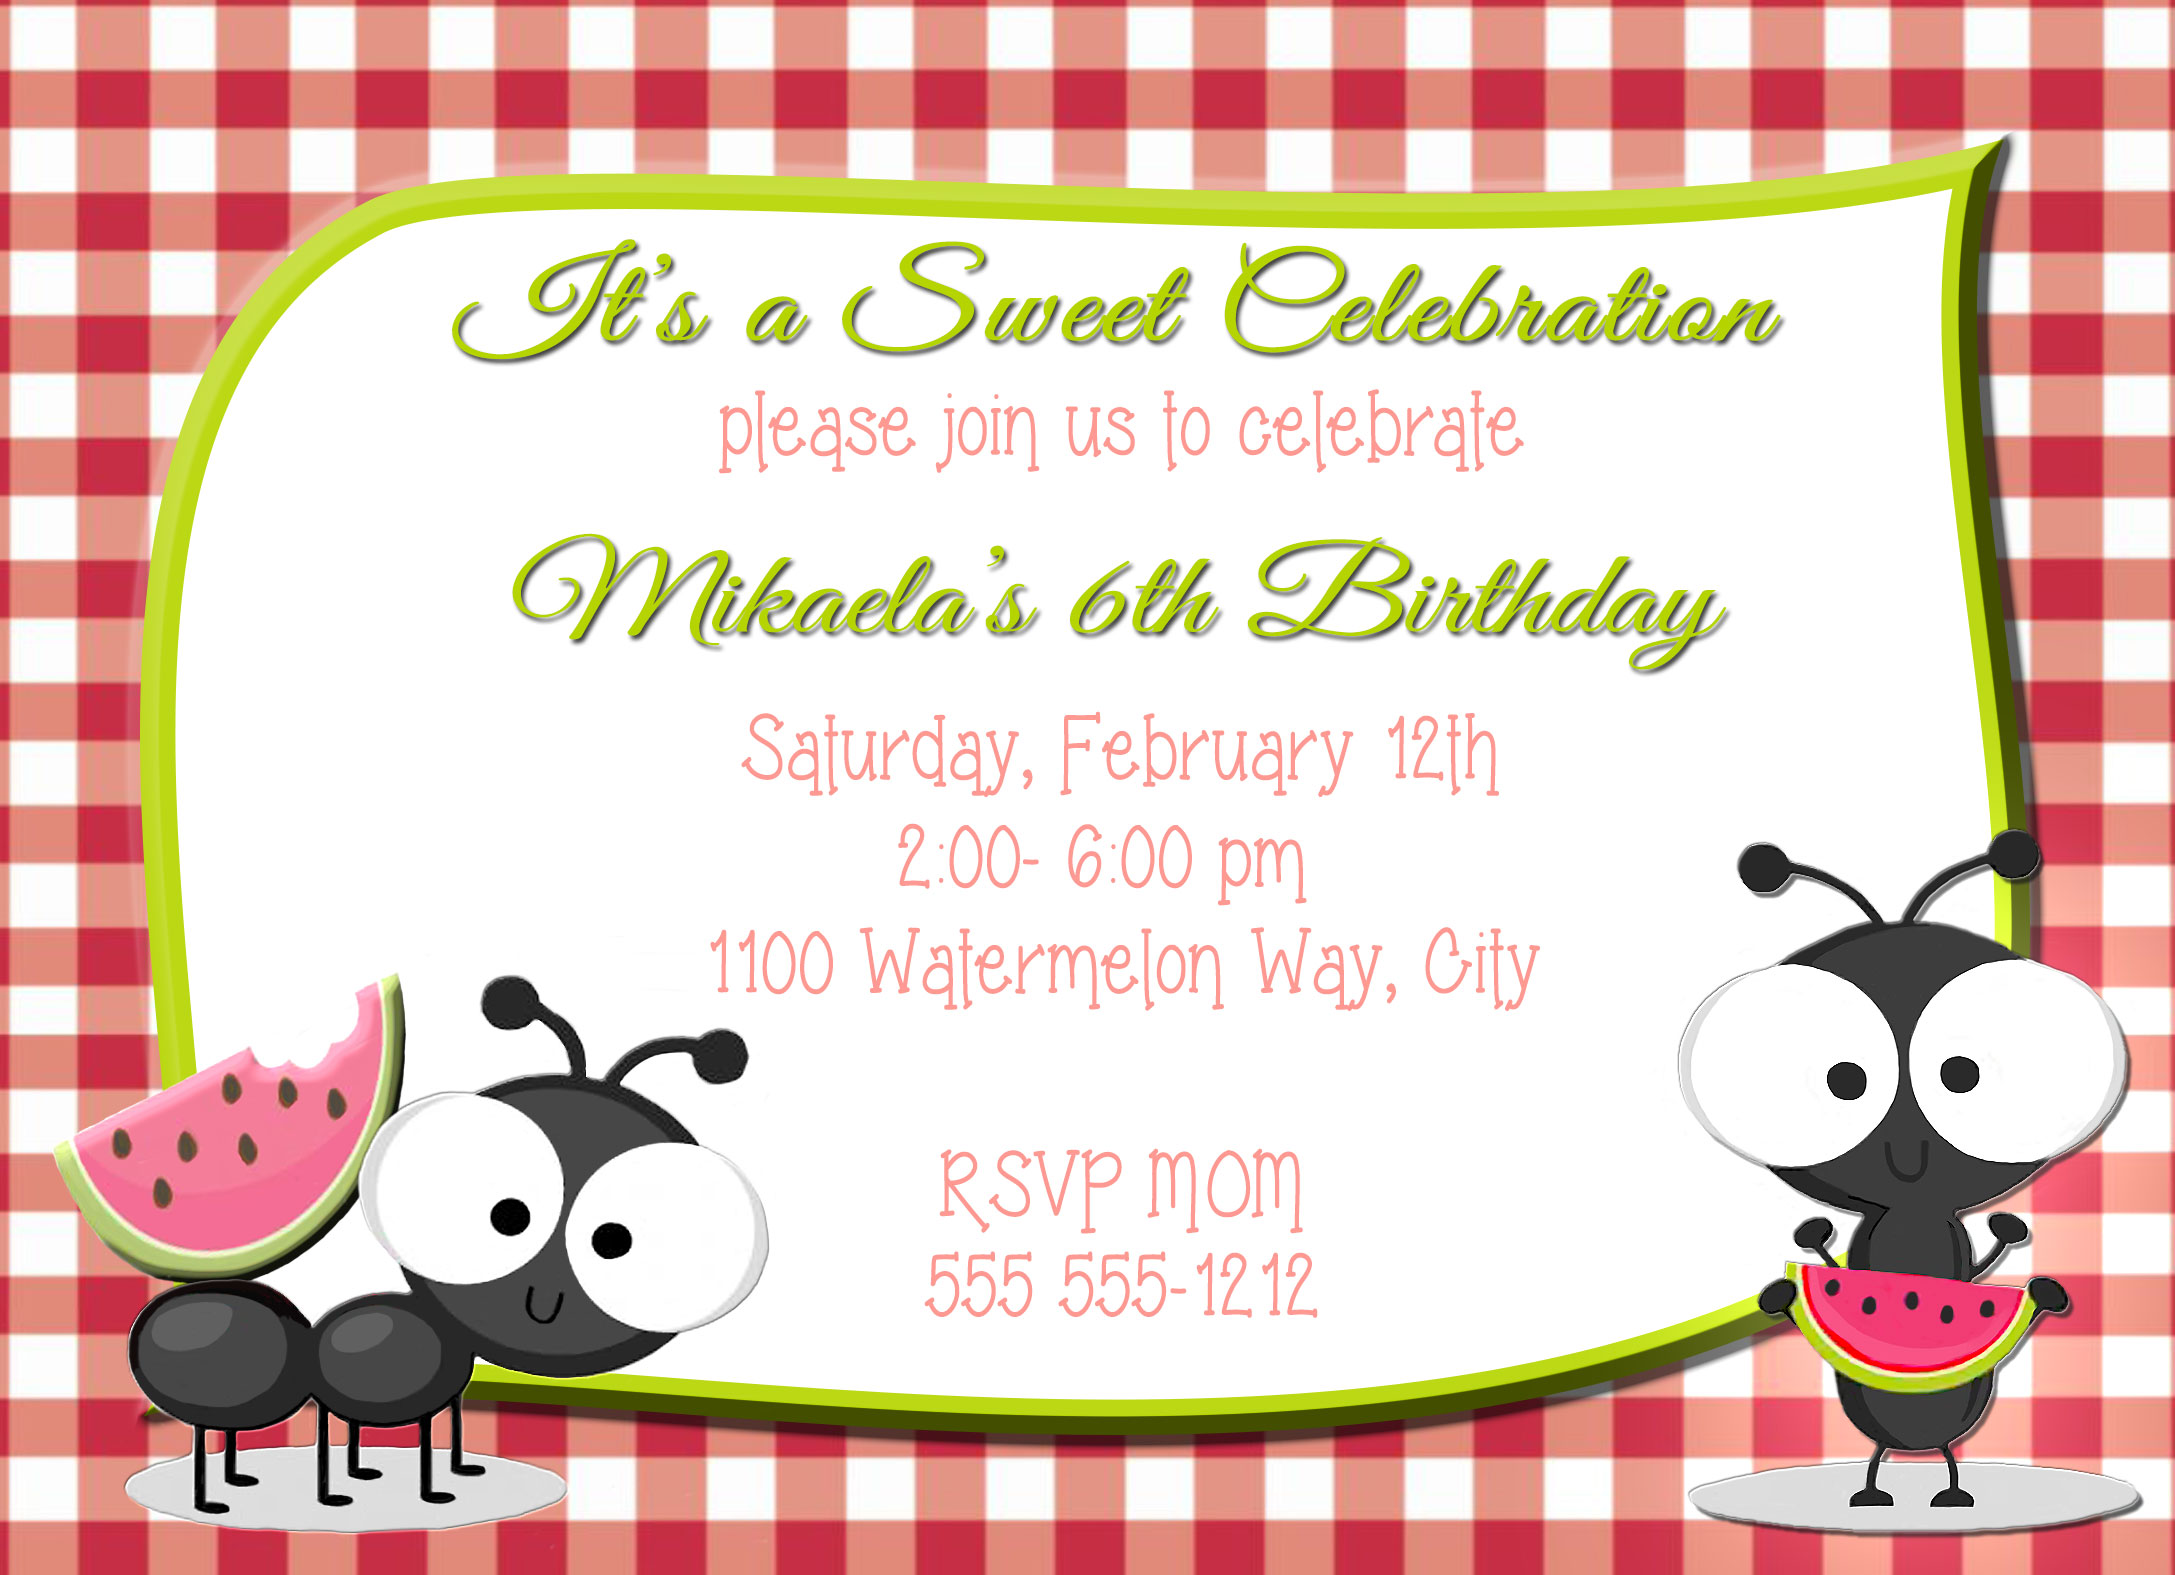 Picnic Ants Watermelon Personalized Birthday Invitation 1 Sided ...